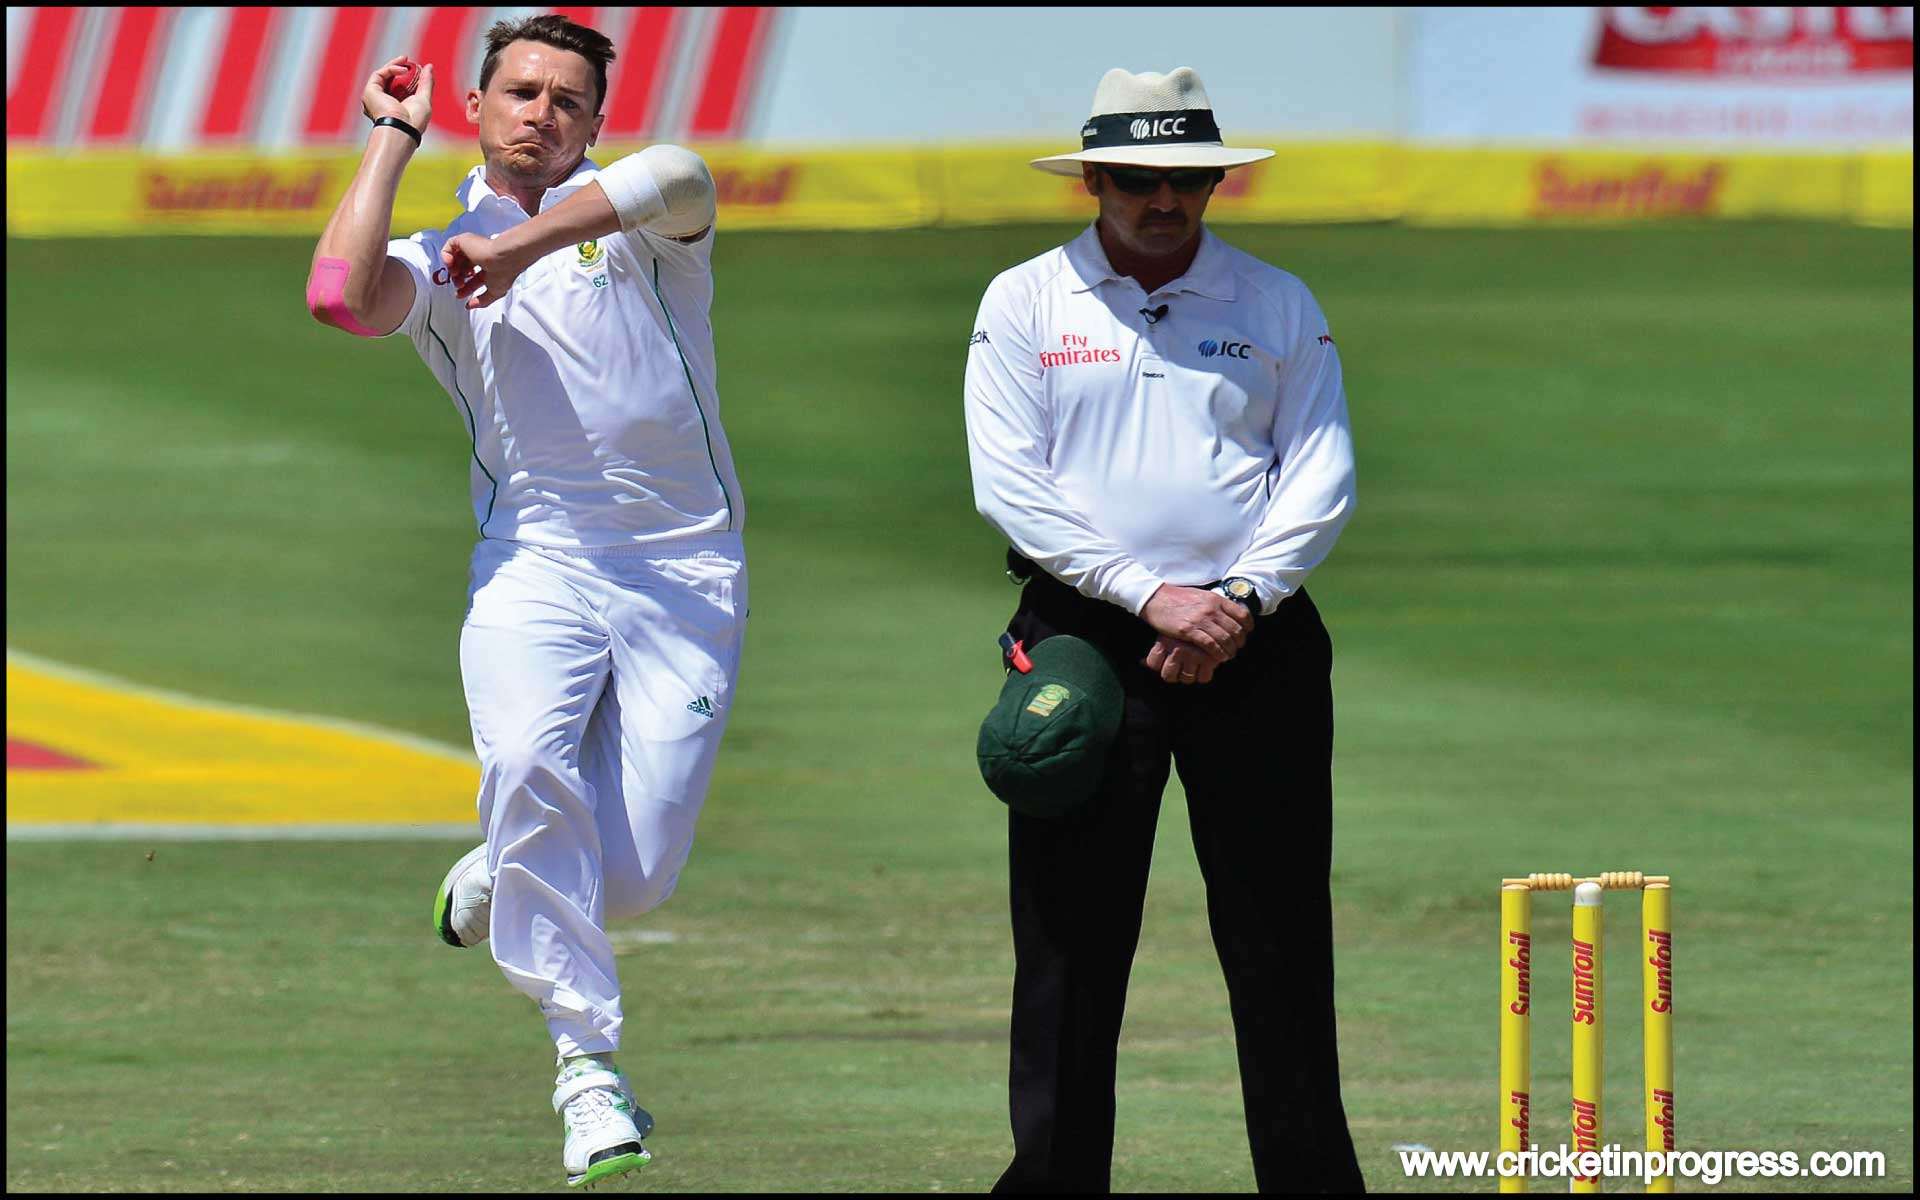 The fall and decline of Dale Steyn. Or, is it